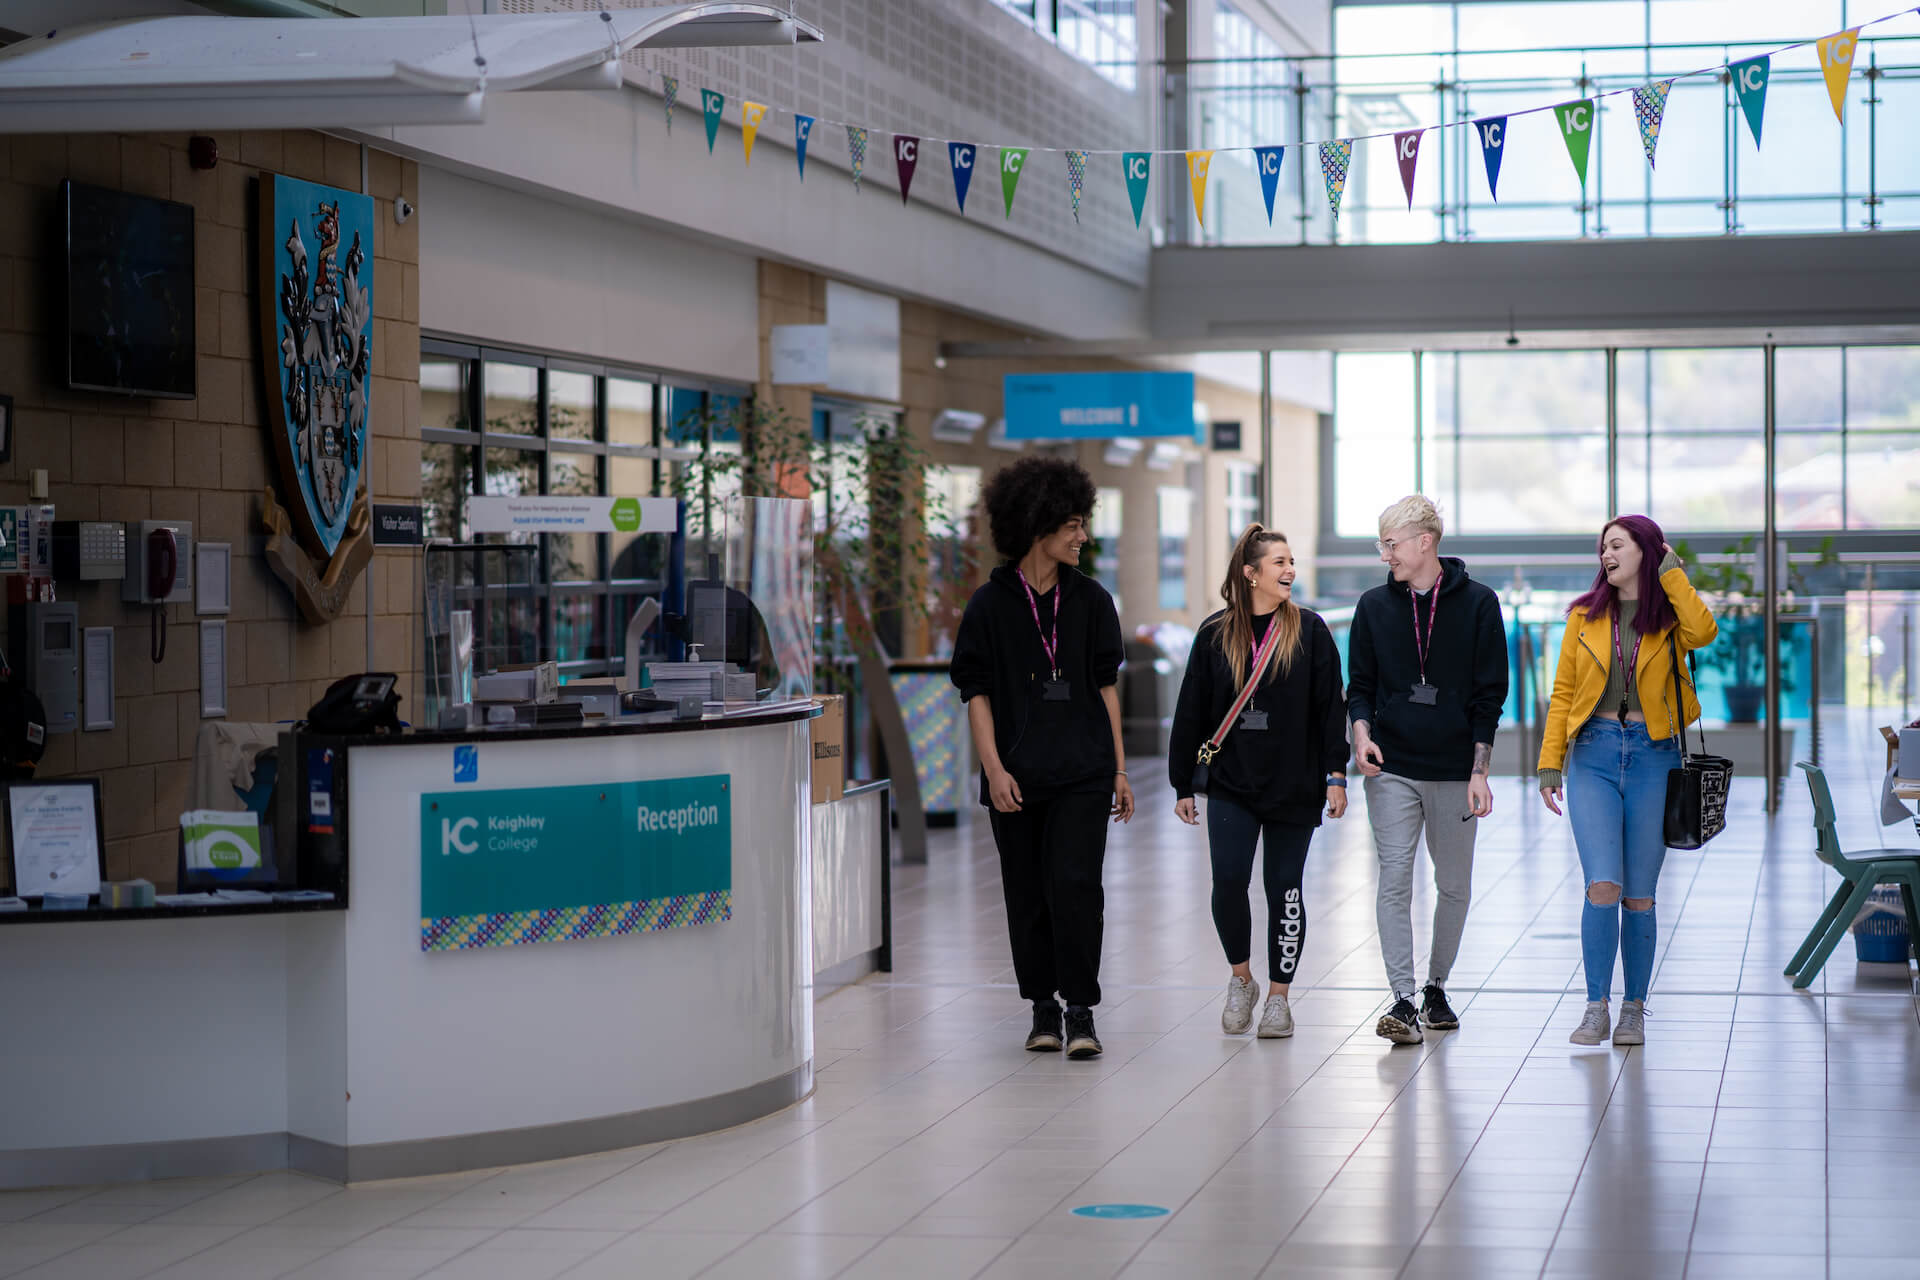 Students walking through Keighley College main entrance